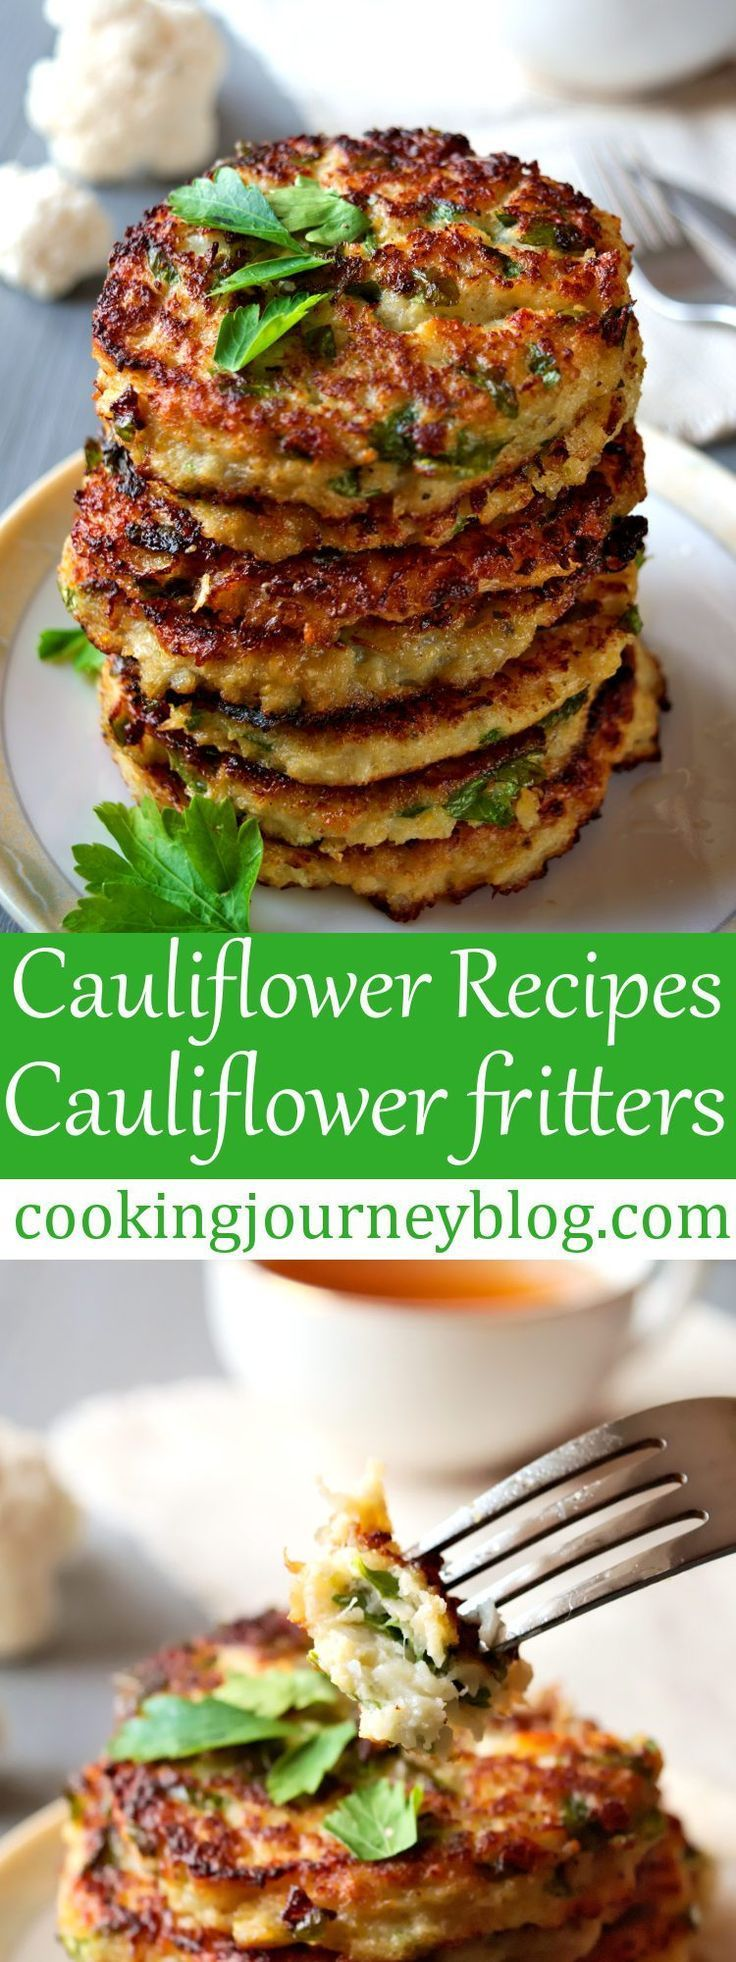 Cauliflower Fritters Best Cauliflower Recipe For Healthy Breakfast